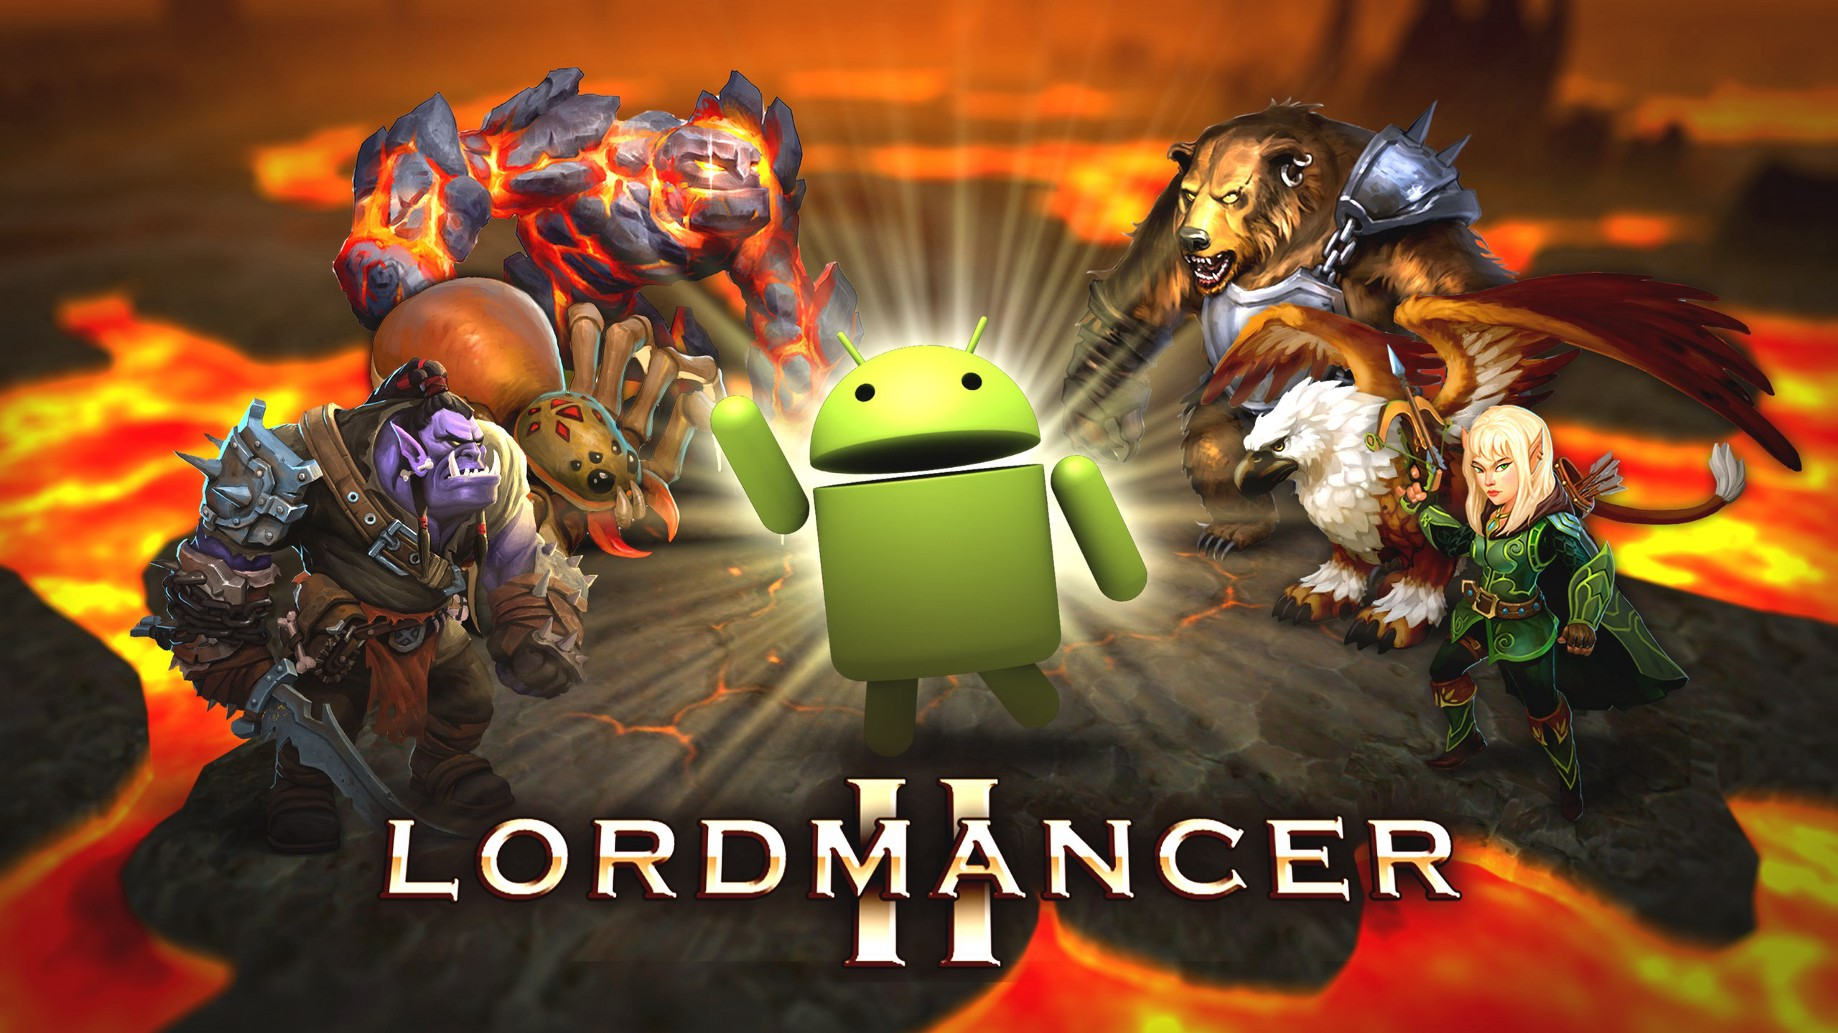 Mobile MMORPG Lordmancer II is officially launched on Android